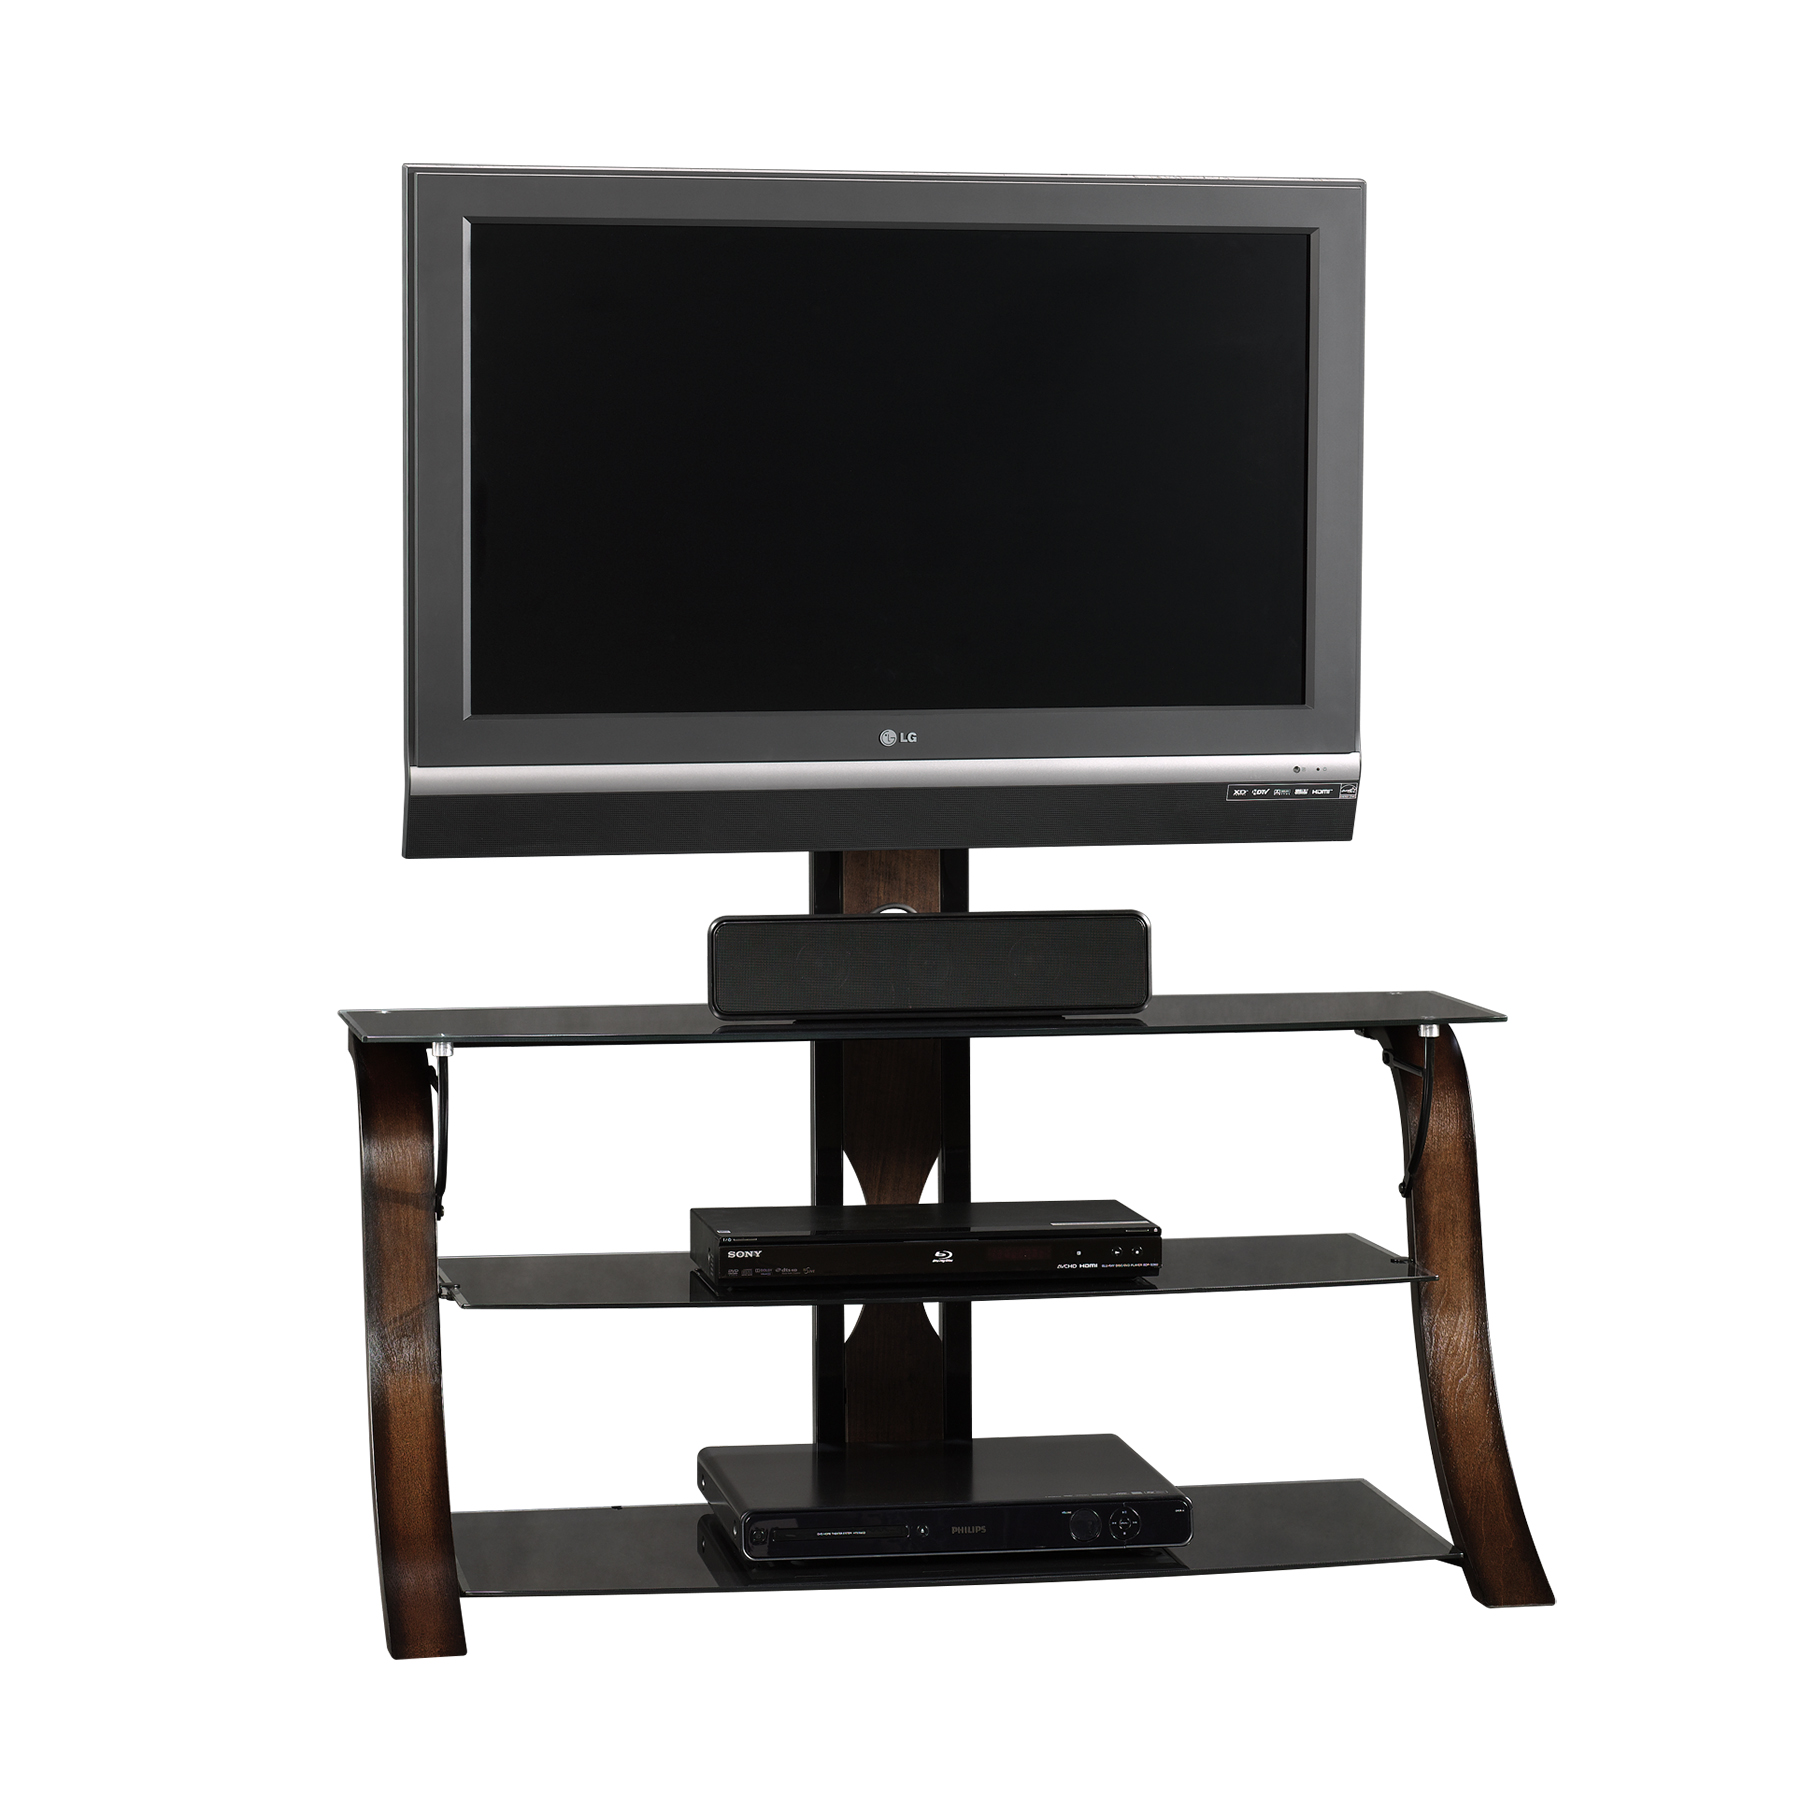 Kmart Tv Mount Tempered Glass Tv Stand Kmart